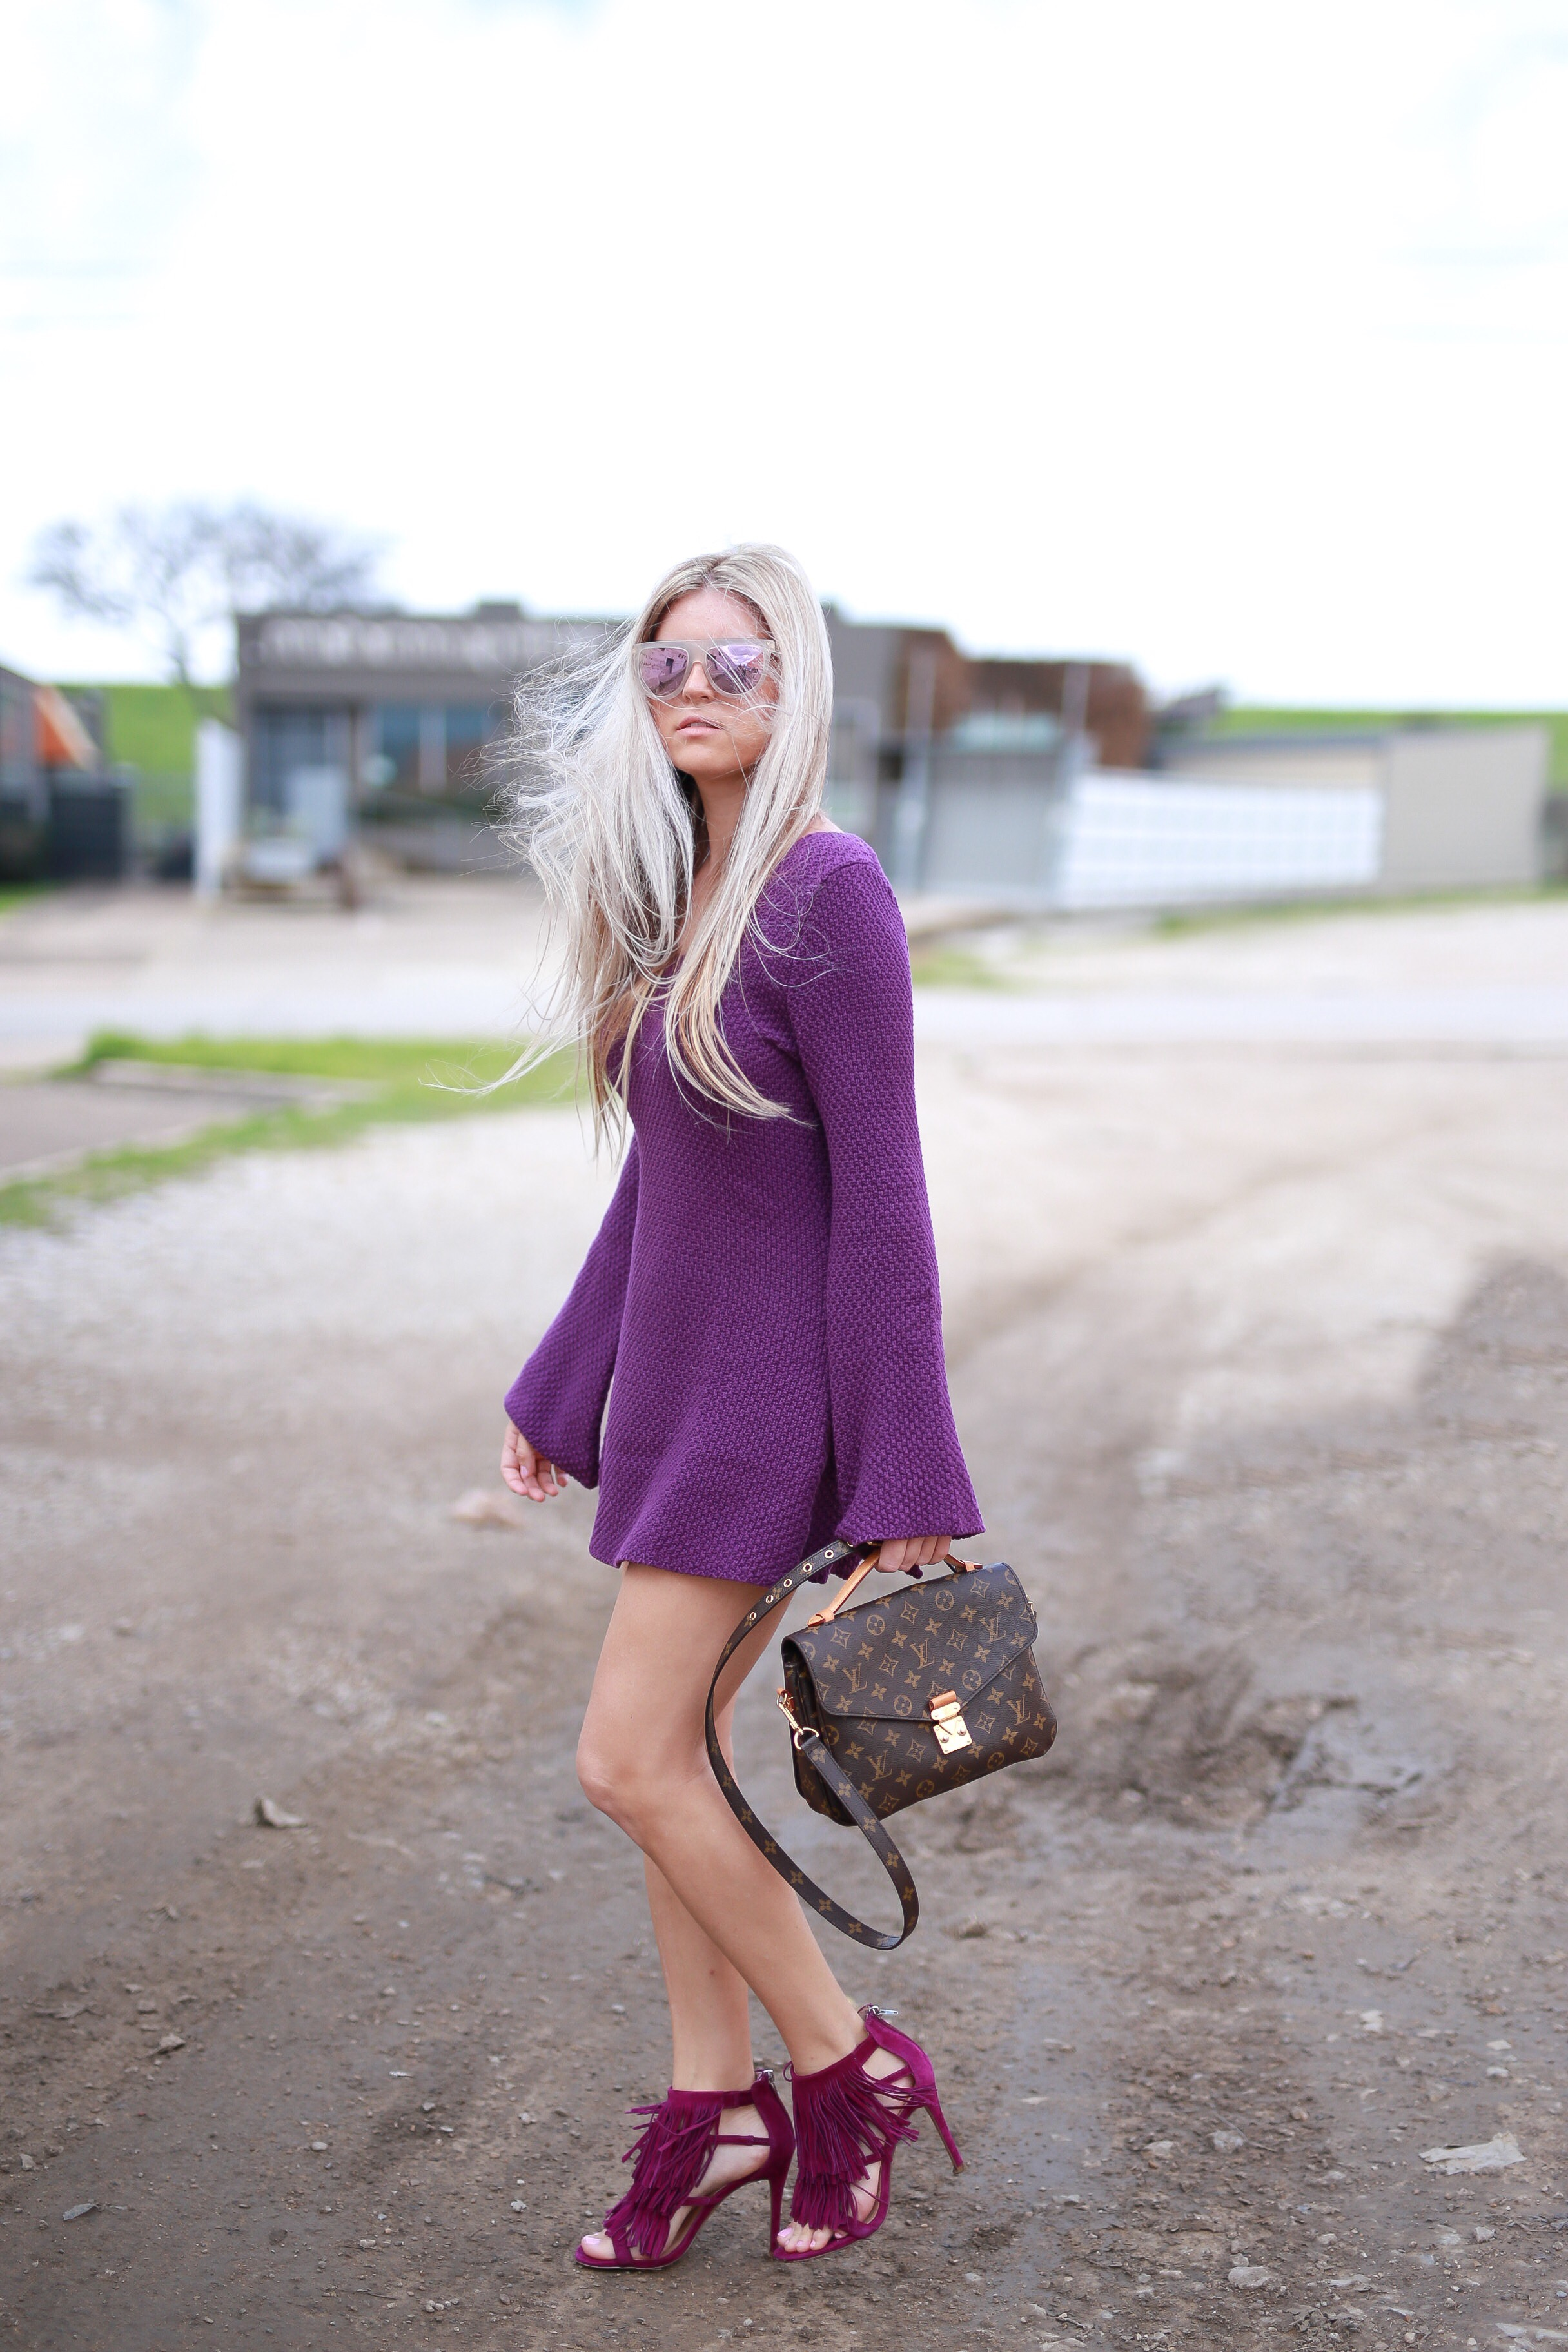 Stephany Bowman Editor of Stephany's Choice wearing a purple bell sleeve knit dress from TOBI, sunglasses from HENRI BENDEL New York, messenger bag from Louis Vuitton and Purple fringe high heels from Steve Madden